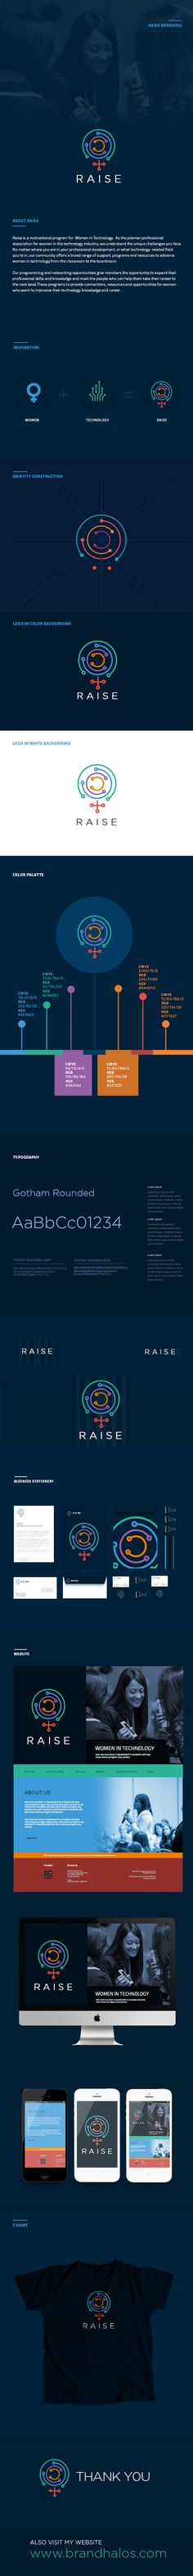 RAISE on Behance